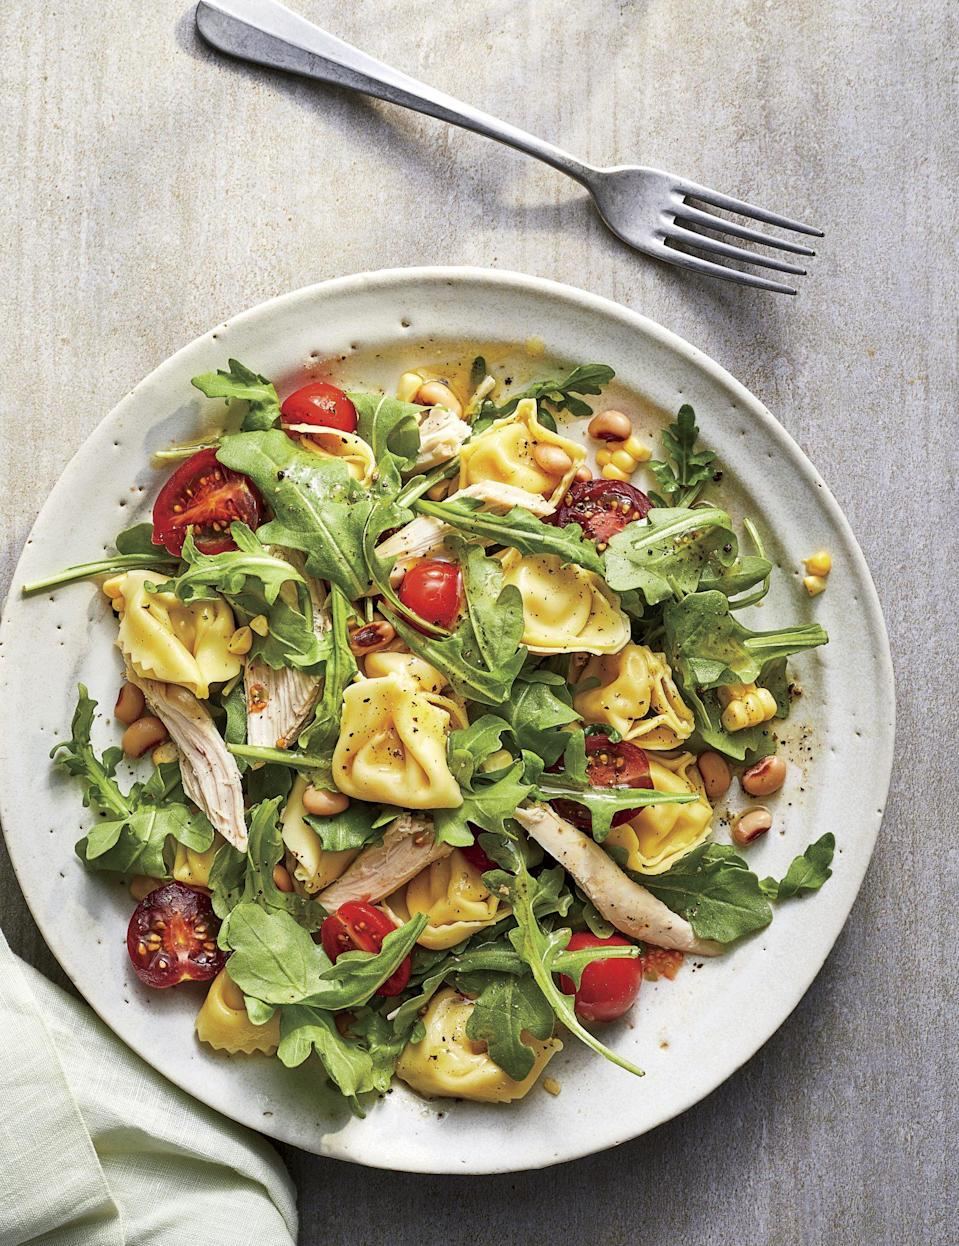 """<p><strong>Recipe: </strong><a href=""""https://www.southernliving.com/recipes/chicken-tortellini-salad"""" rel=""""nofollow noopener"""" target=""""_blank"""" data-ylk=""""slk:Chicken Tortellini Salad"""" class=""""link rapid-noclick-resp""""><strong>Chicken Tortellini Salad</strong></a></p> <p>Store-bought favorites like refrigerated tortellini and rotisserie chicken meet in this easy salad that will be the most delicious brown bag lunch in the office.</p>"""